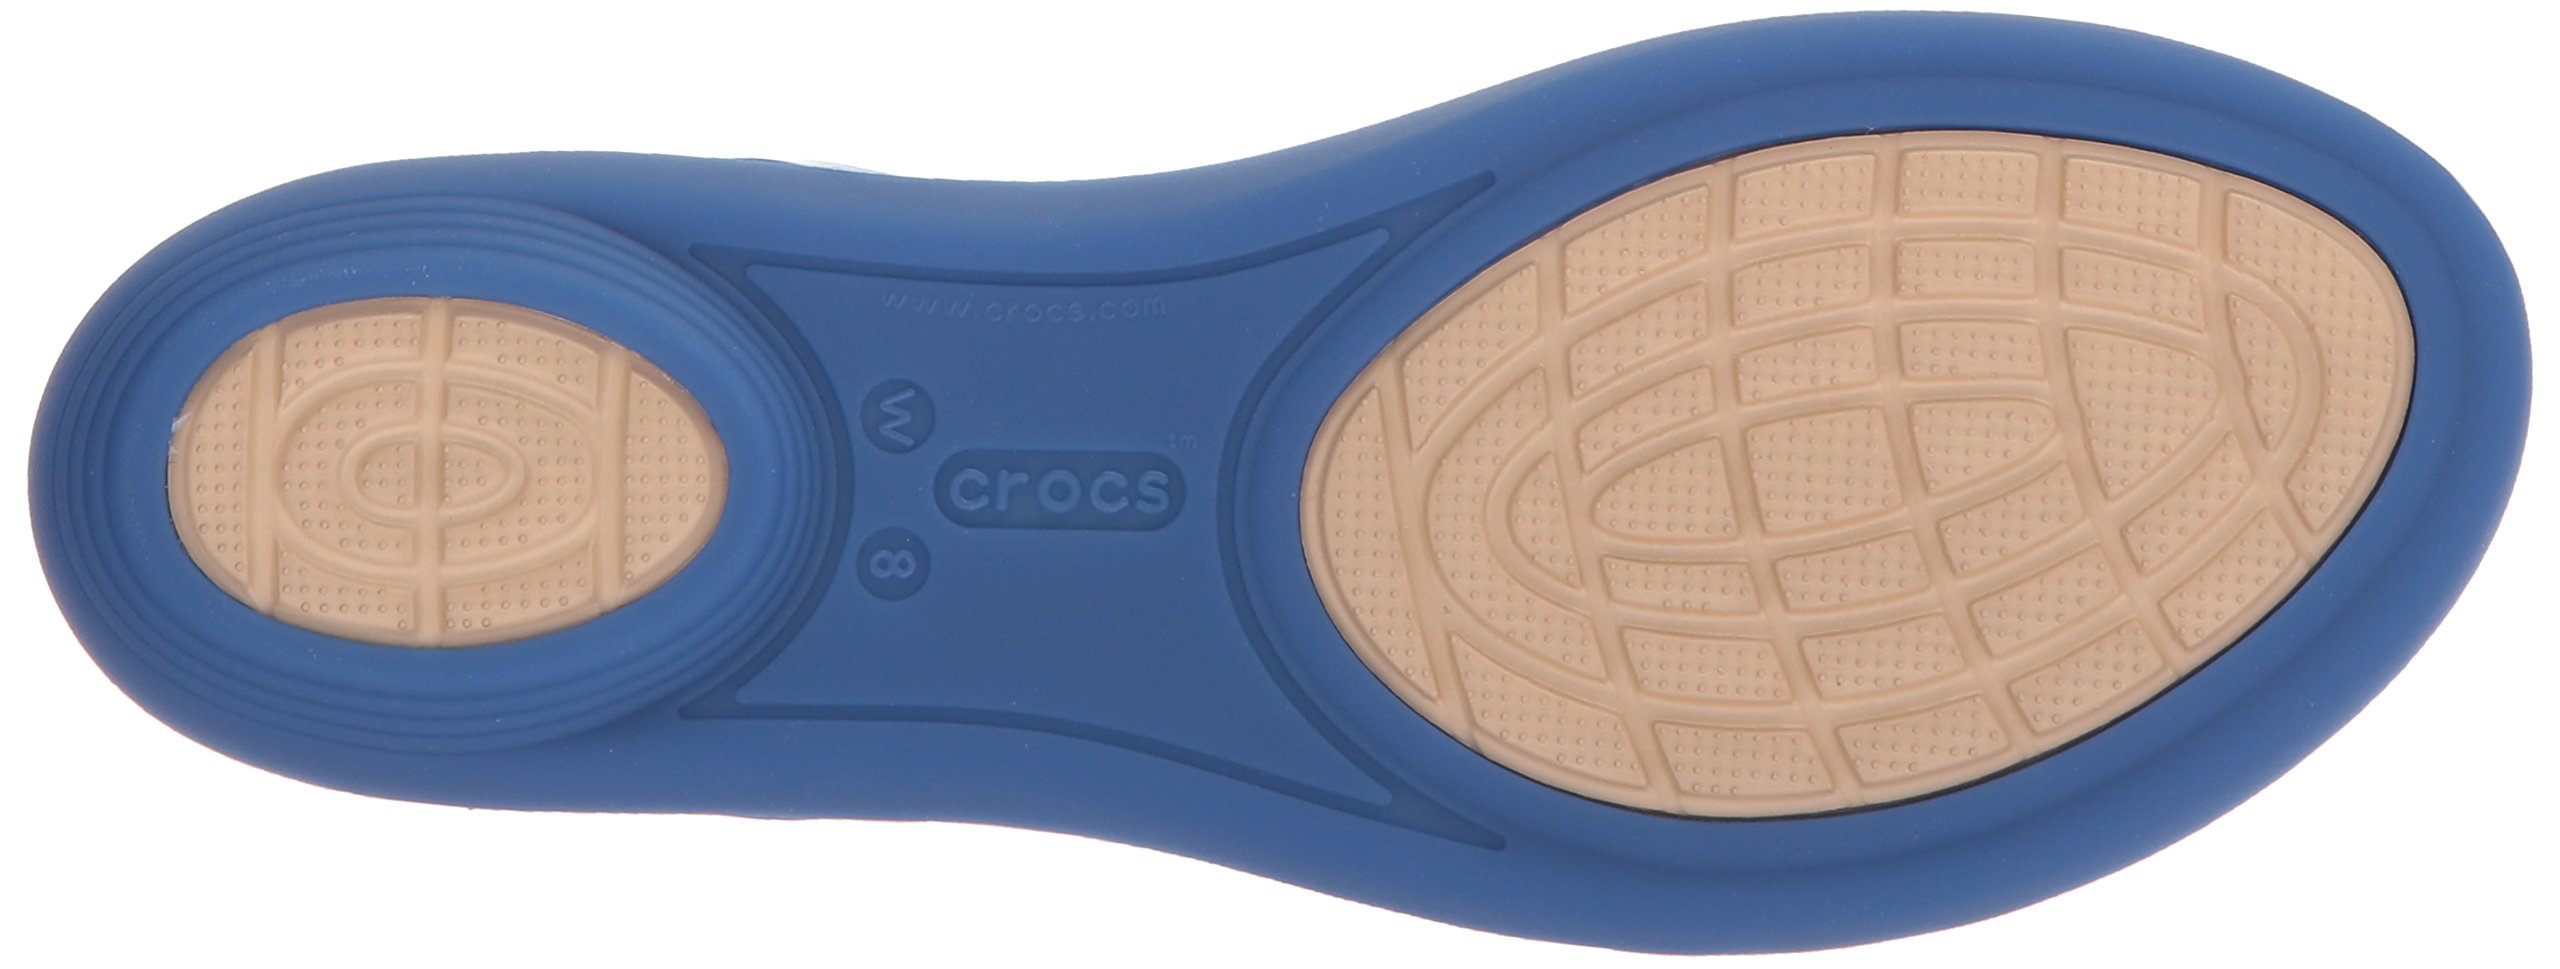 Crocs Women's Isabella GRPH Strappy Flat Sandal, Blue Jean/Gold, 10 M US by Crocs (Image #3)